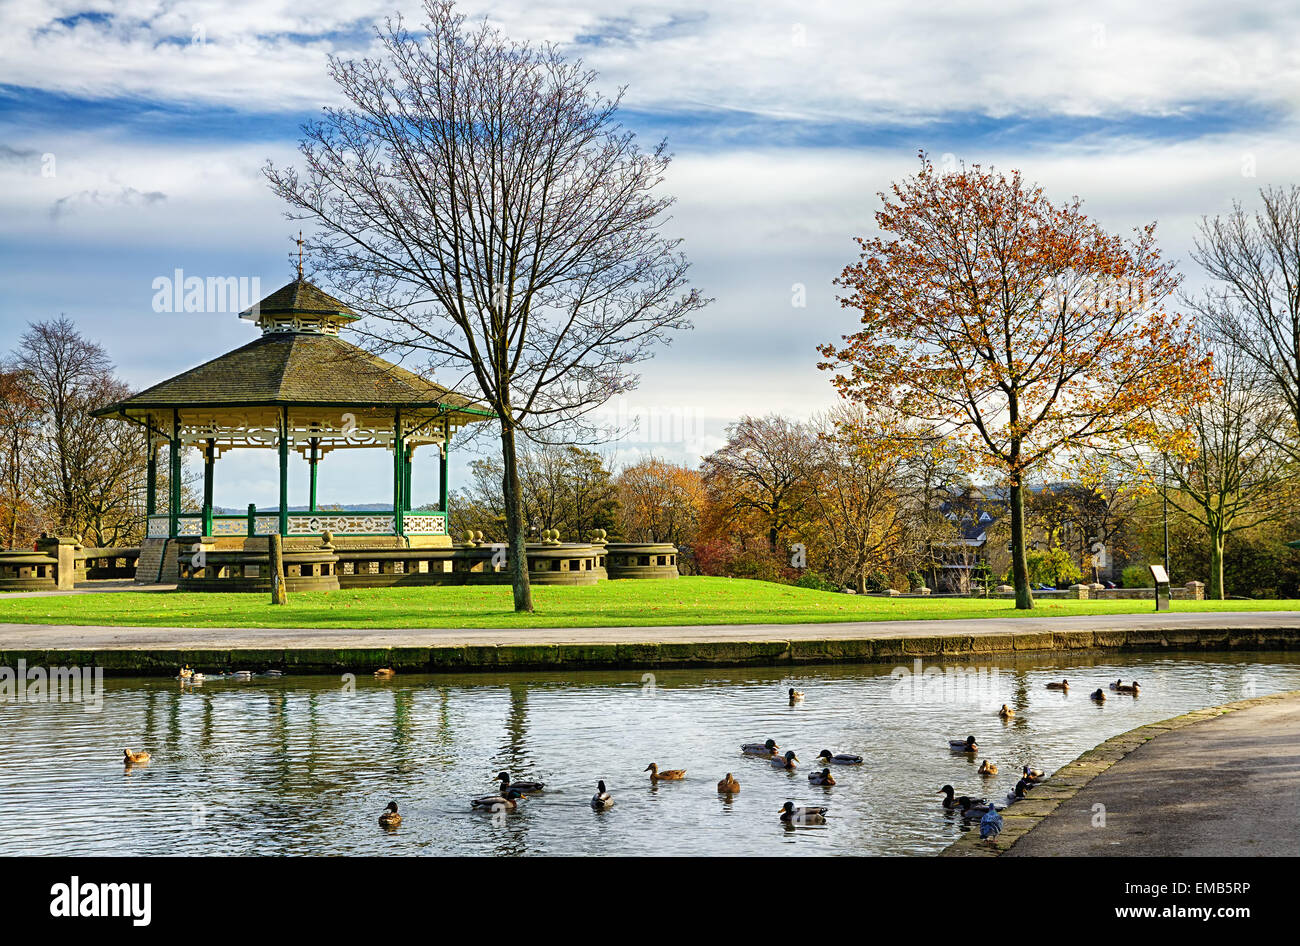 Bandstand and duck pond in Greenhead park, Huddersfield, Yorkshire, England - Stock Image